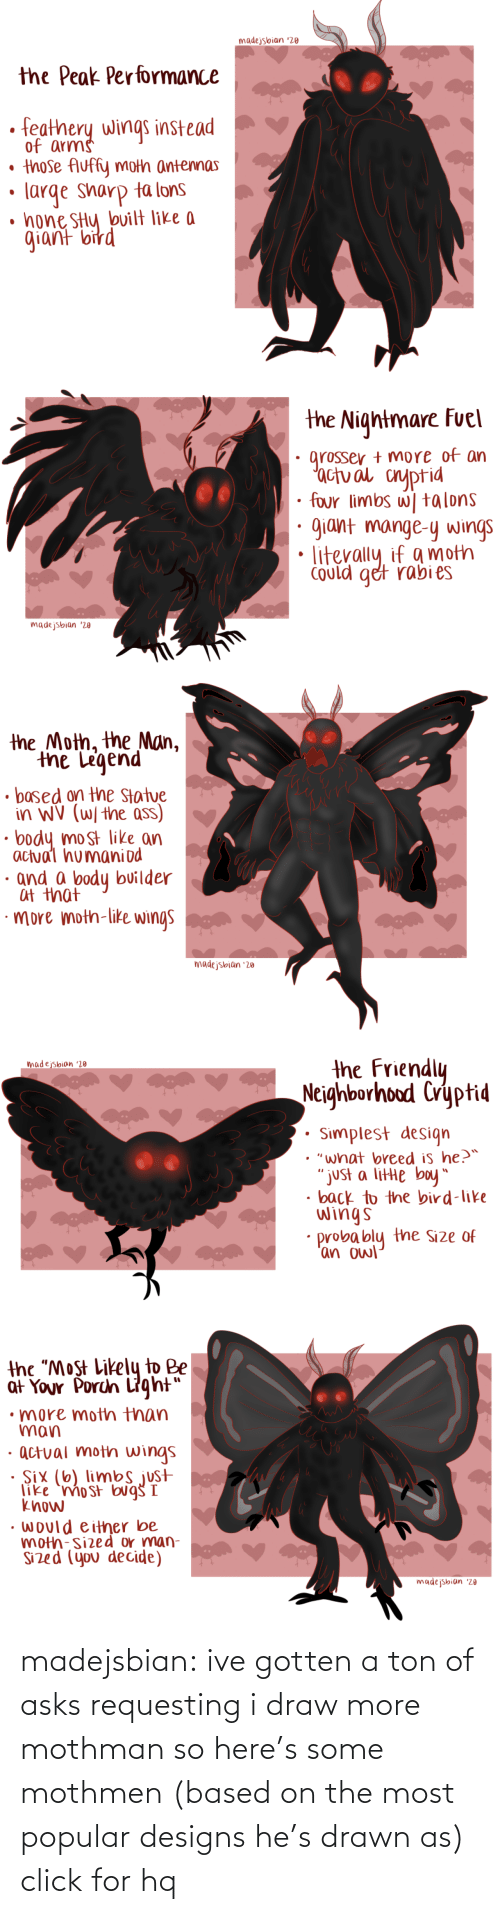 "Likely: madejsbian '20  the Peak Performance  feathery wings instead  of arms  • those Auffy moth antennas  large sharp ta lons  • hone SHy bvilt like a  giant bird   the Nightmare Fuel  grosser + more of an  'actual cnyptid  four limbs w| talons  giant mange-y wings  Could get rabi es  madejsbian '20   the Moth, the Man,  the Legend  • based on the Statue  in WV (W/ the ass)  body most like an  actual humaniod  · and a body builder  at that  ·more moth-like wings  madejsbian '20   the Friendly  Neighborhood Cryptid  madejsbian '20  Simplest design  • ""what breed is he?™  ""just a litte boy""  • back to the bird-like  wings  probably the Size of  'an owl   the ""Most Likely to Be  at Your Porch Light""  •more moth than  man  · actual moth wings  · Six (6) limbs just  like 'mo st bug I  know  • would either be  moth-sized or man-  Sized (you decide)  madejsbian '20 madejsbian: ive gotten a ton of asks requesting i draw more mothman so here's some mothmen (based on the most popular designs he's drawn as)